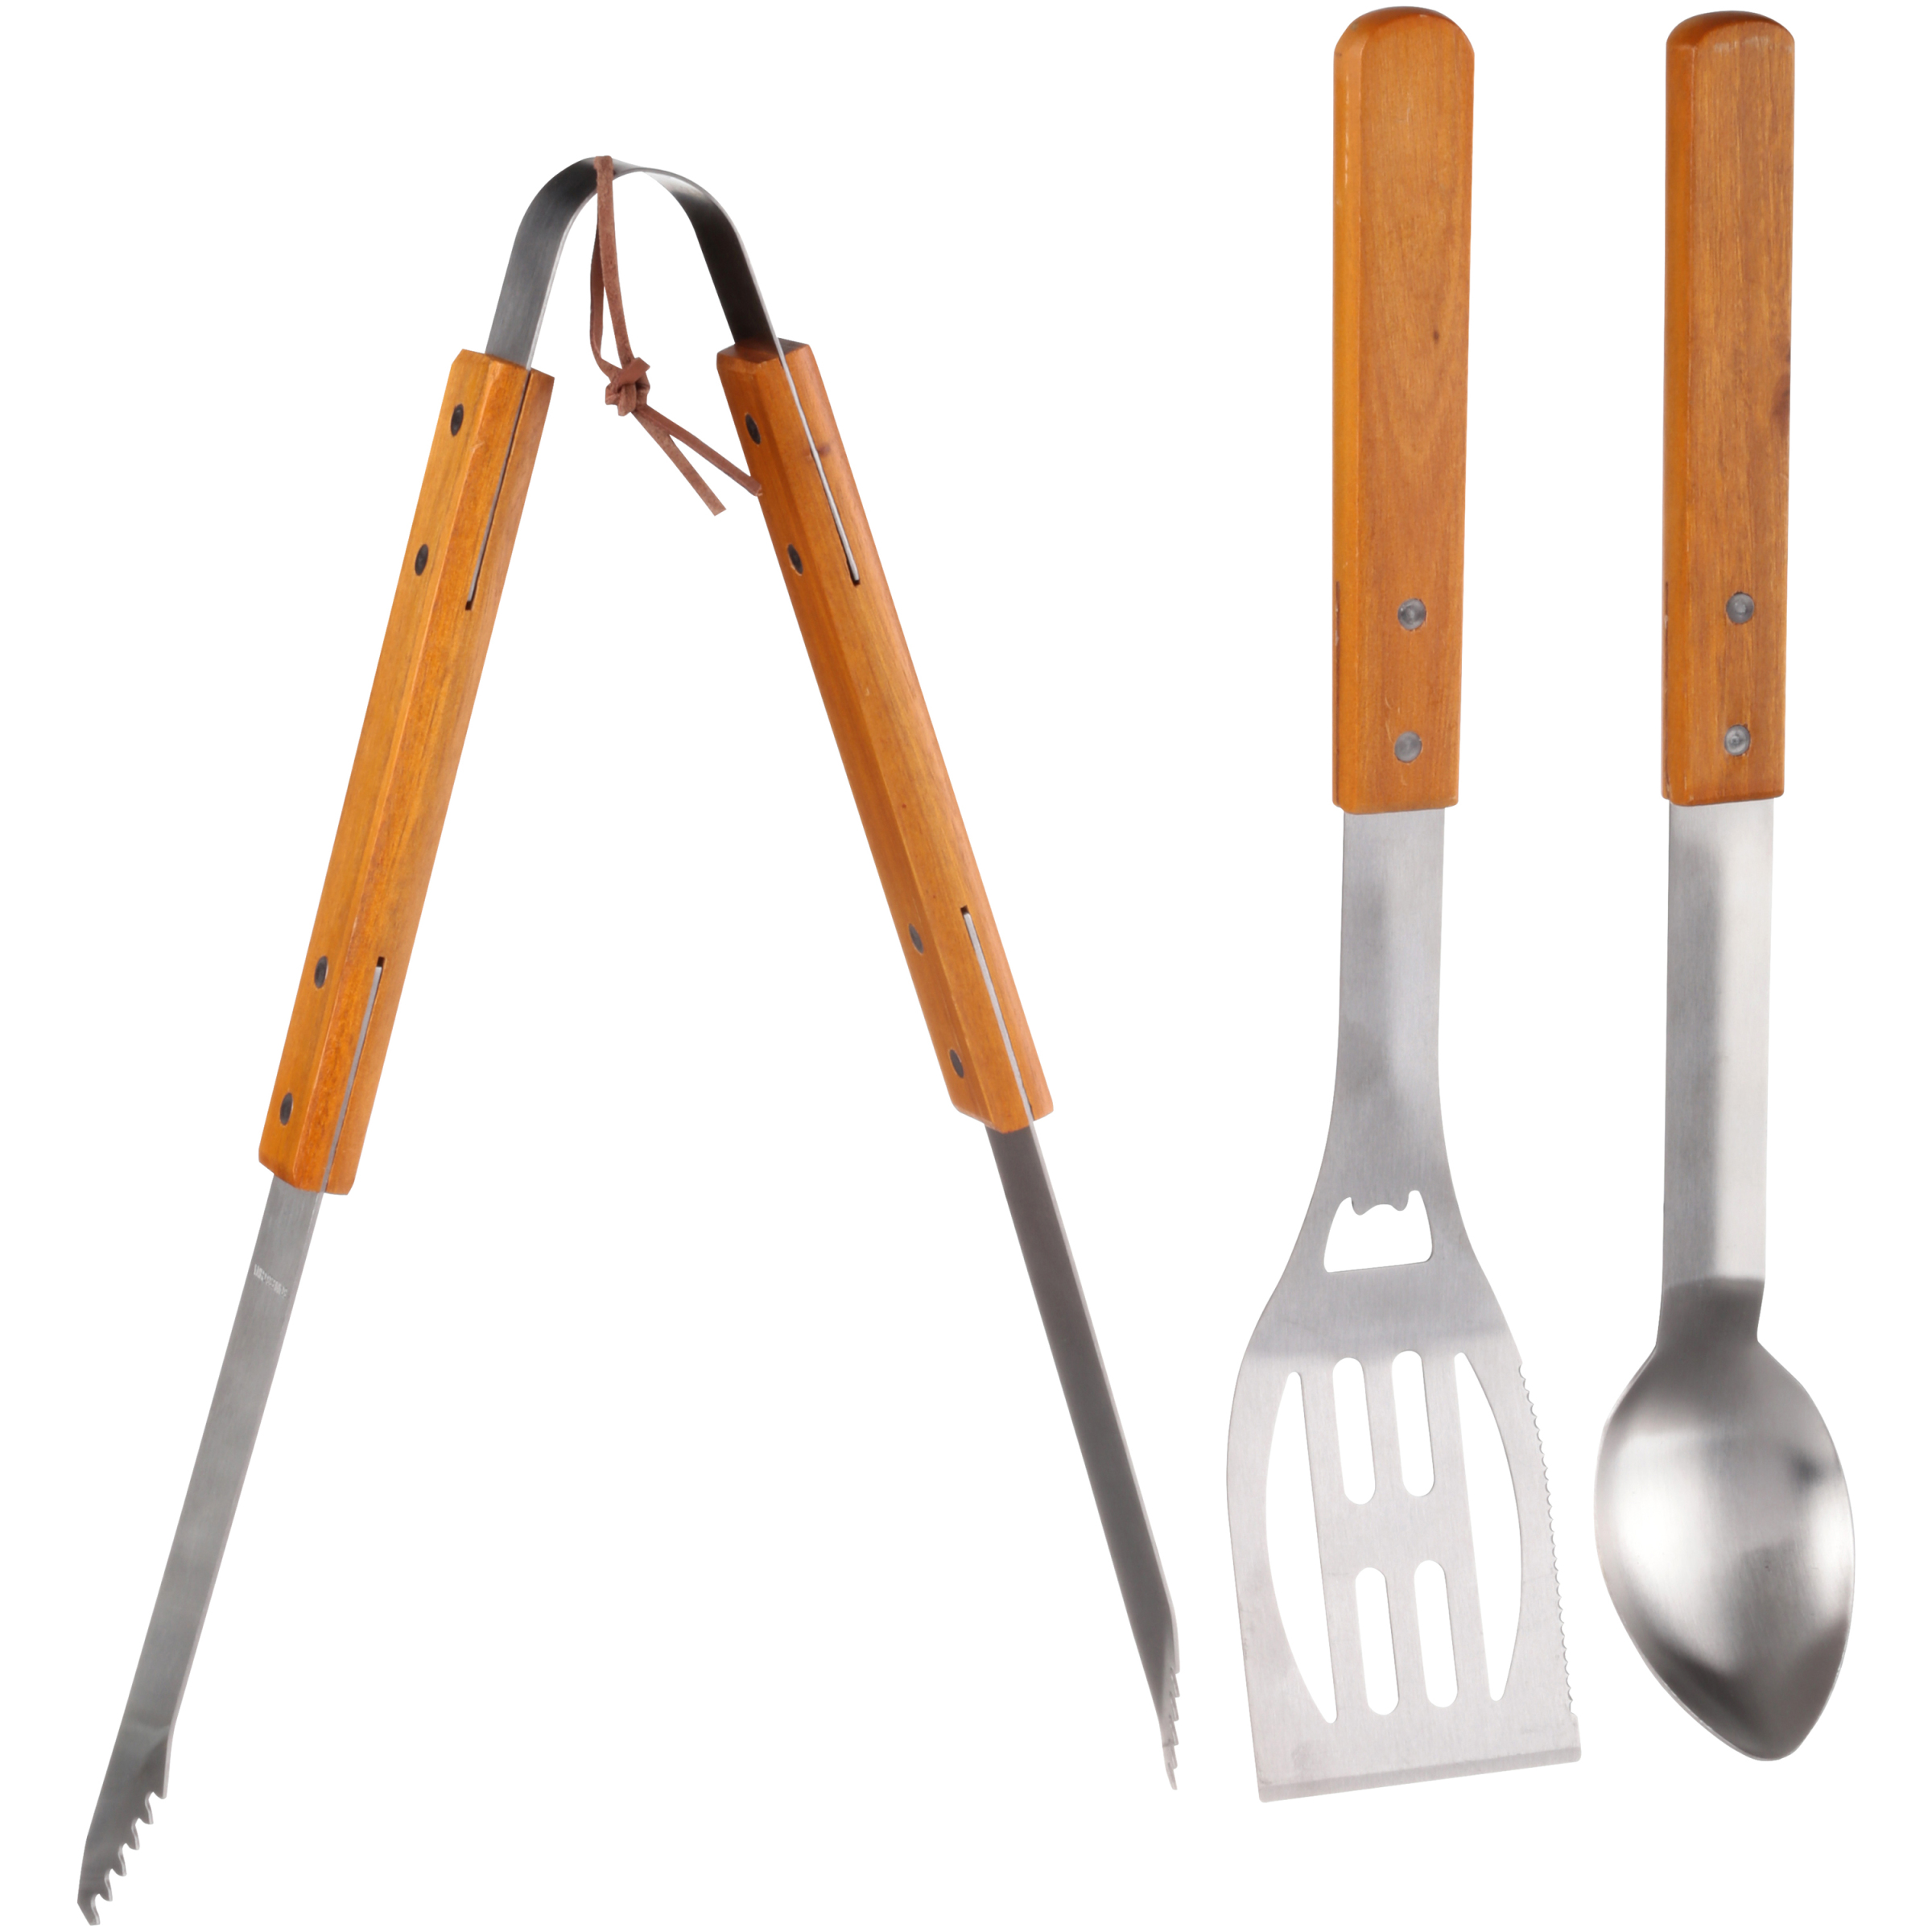 Ozark Trail Outdoor Equipment Cooking Tool Set 3 pc Pack by Wal-Mart Stores, Inc.